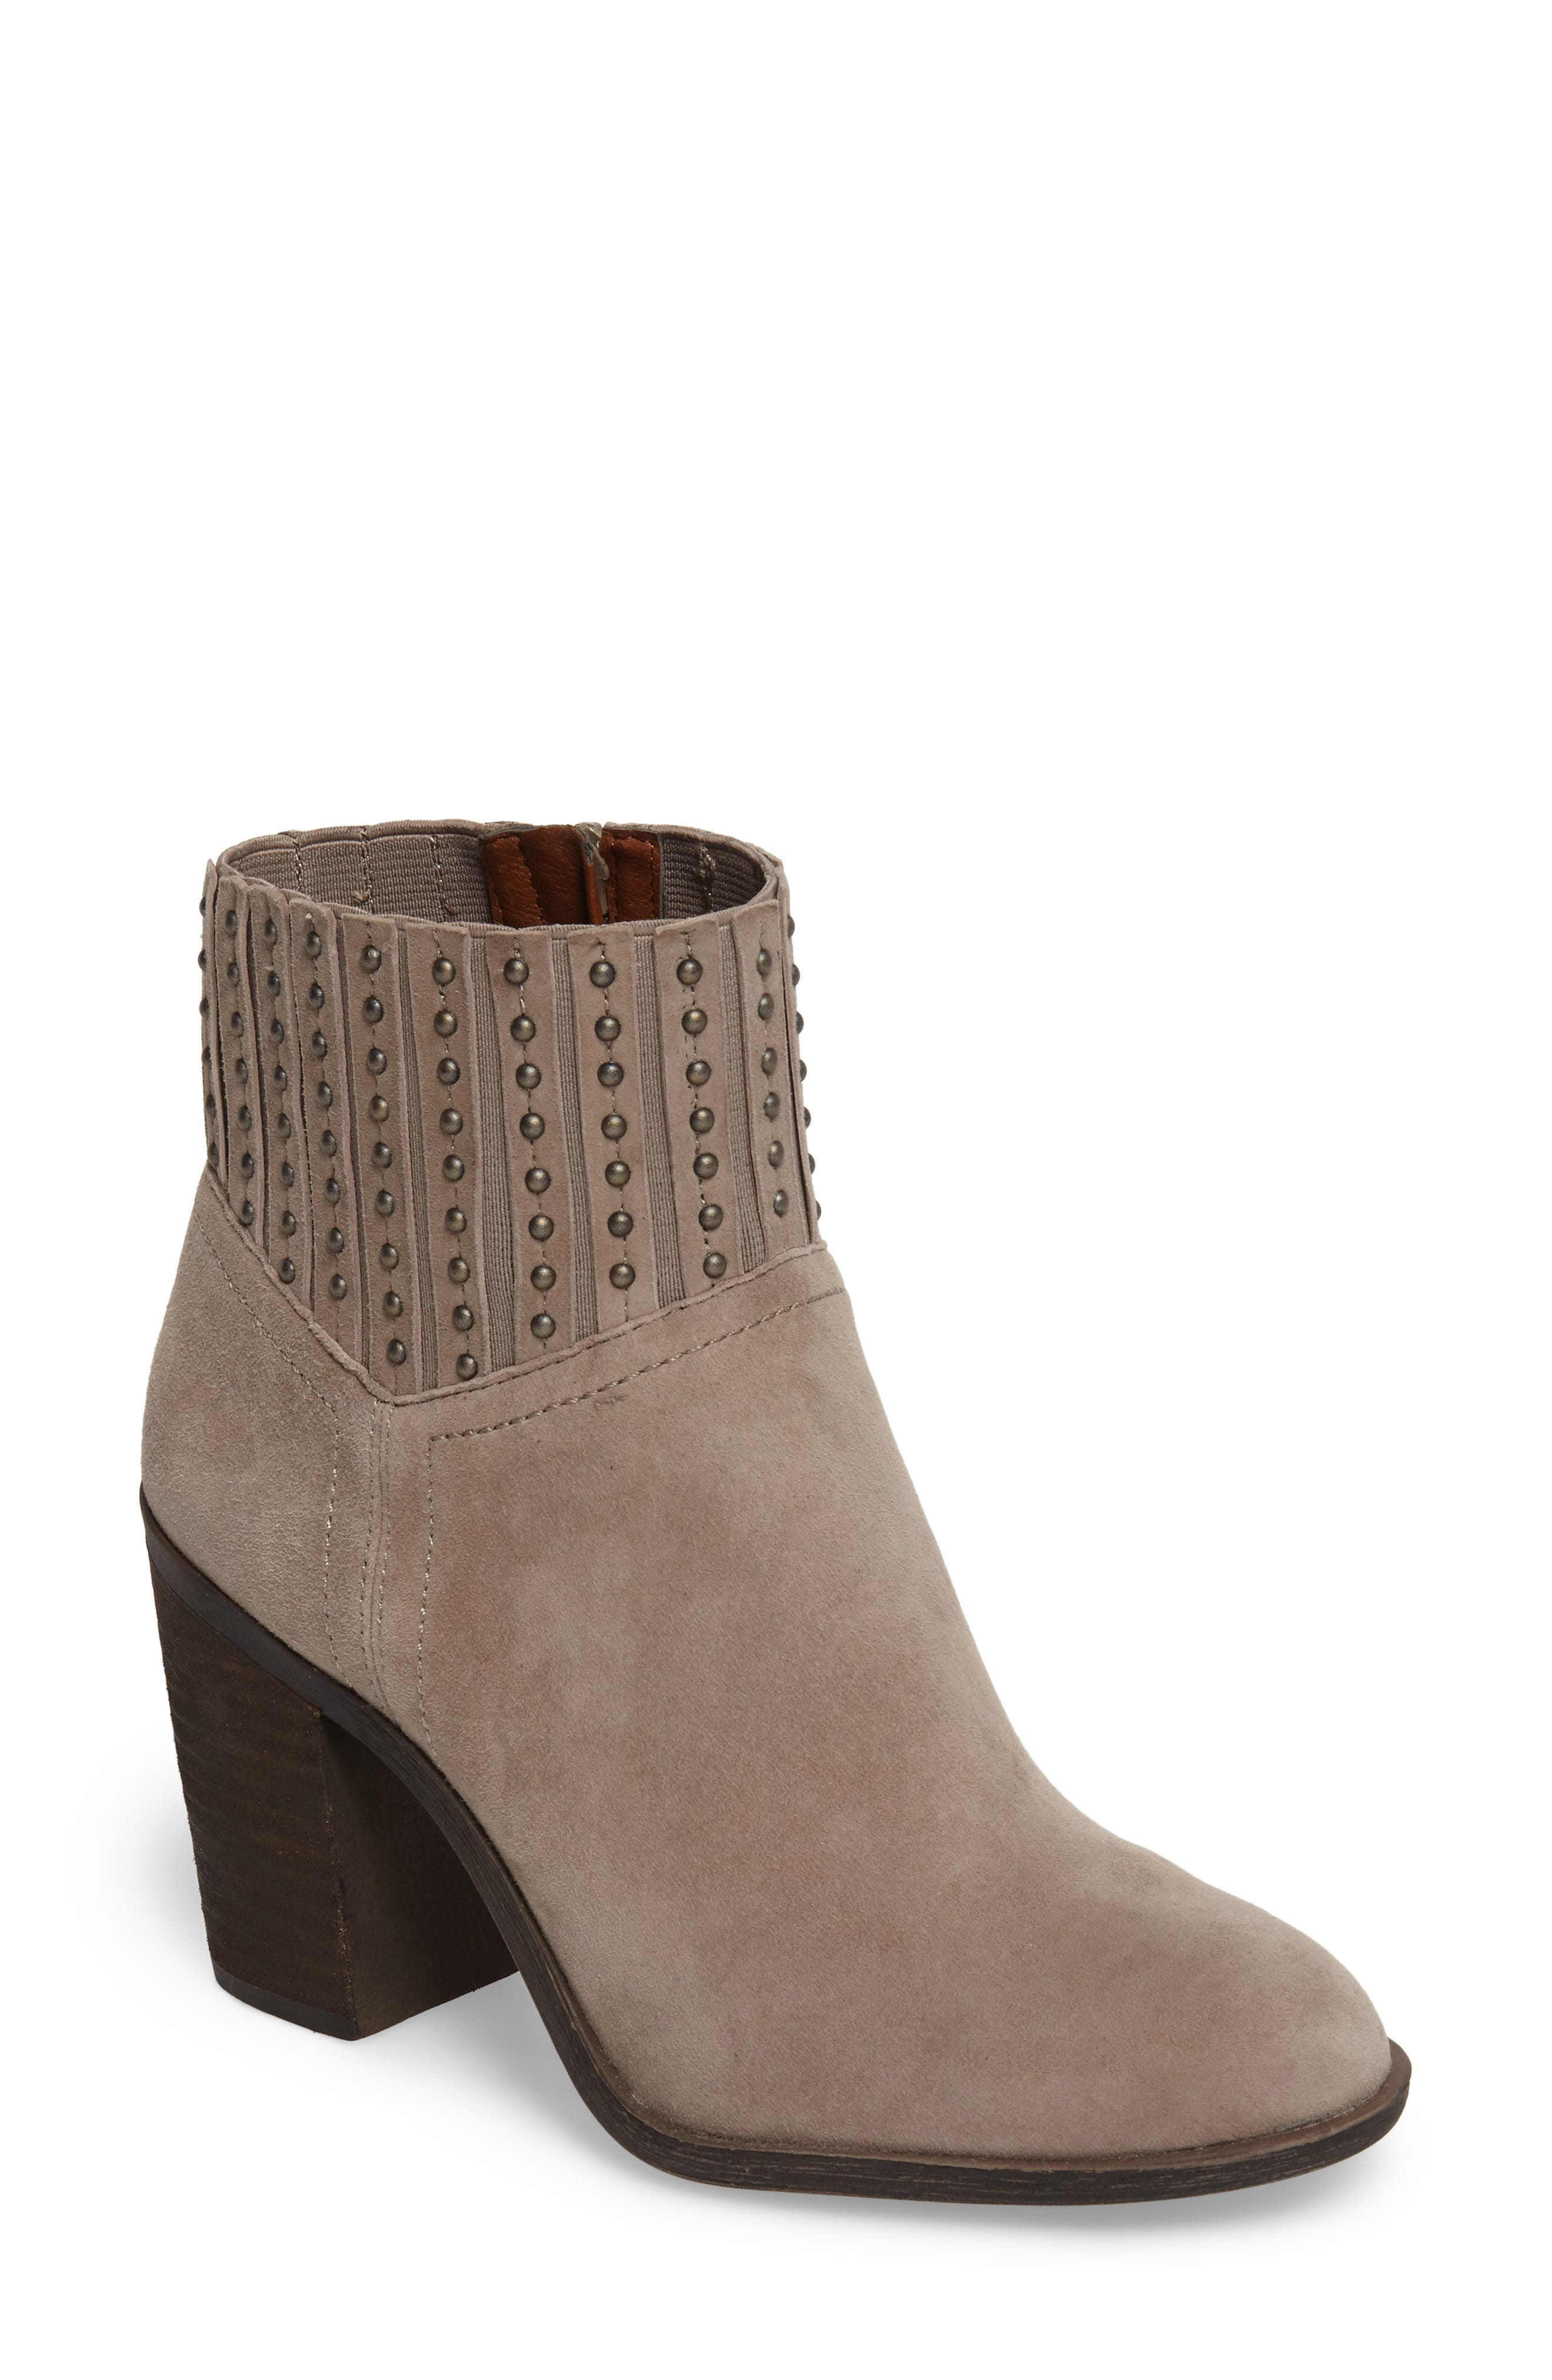 Salome Embellished Bootie,                             Main thumbnail 2, color,